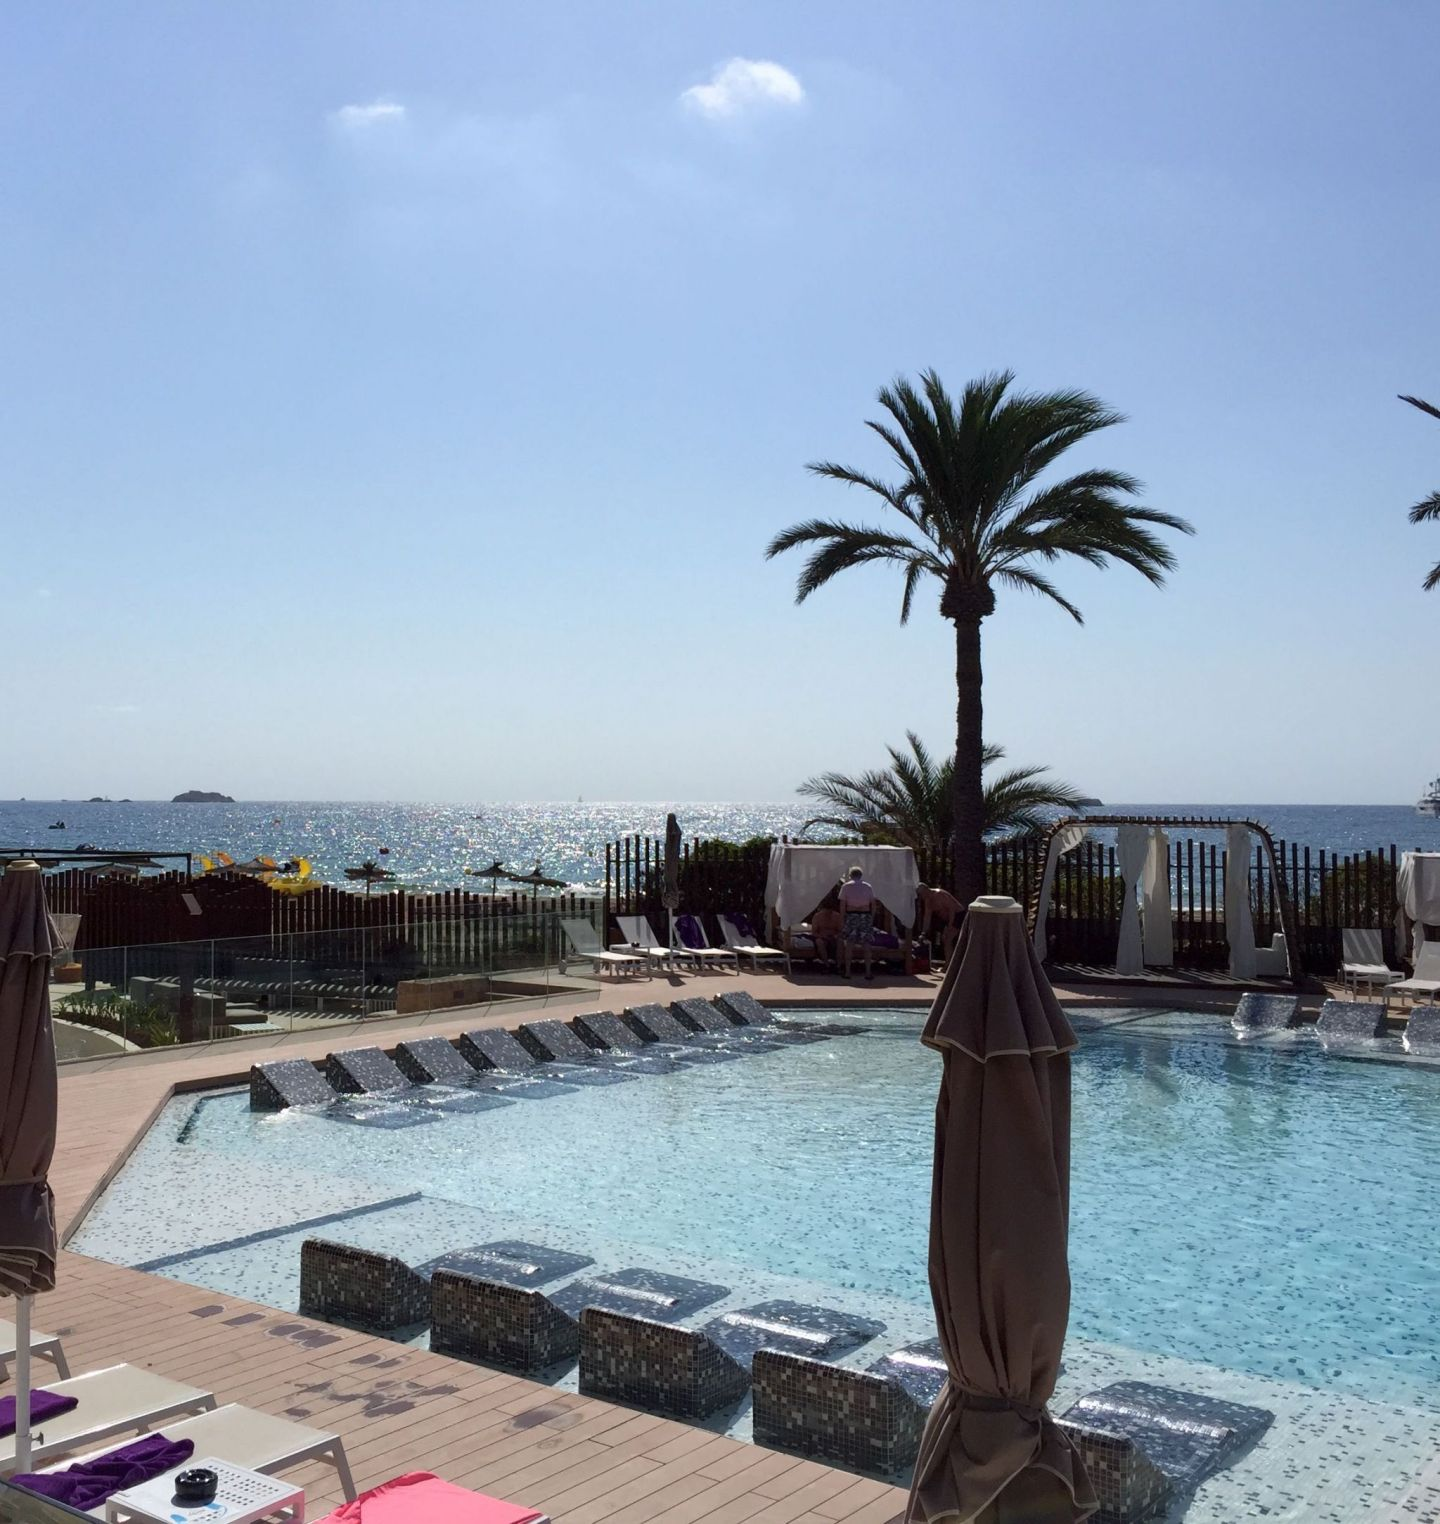 One of the pools at the Hard Rock Hotel Ibiza